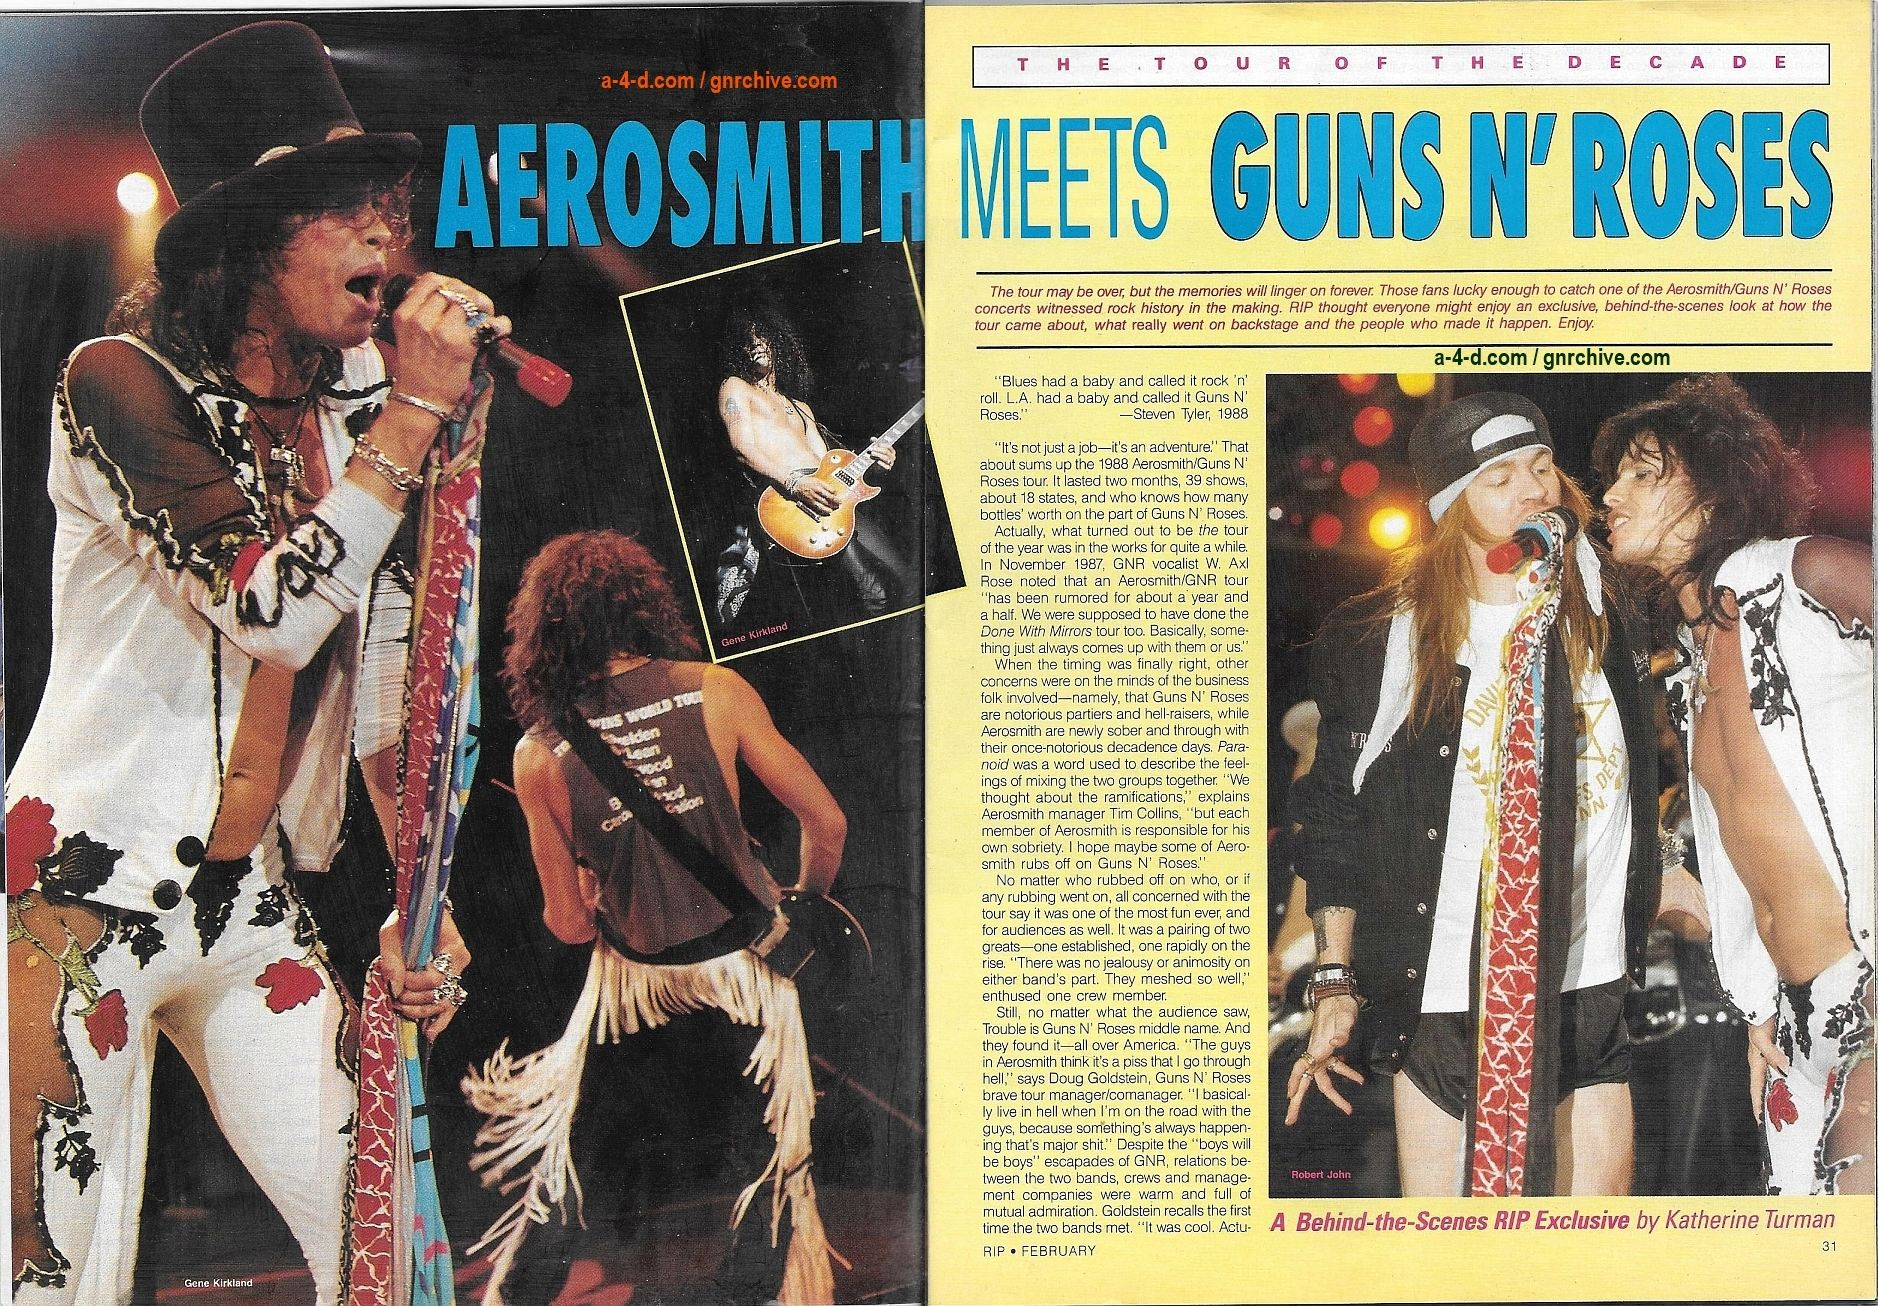 1989.02.DD - RIP Magazine - Aerosmith Meets Guns N' Roses (Doug Goldstein) 1989_028